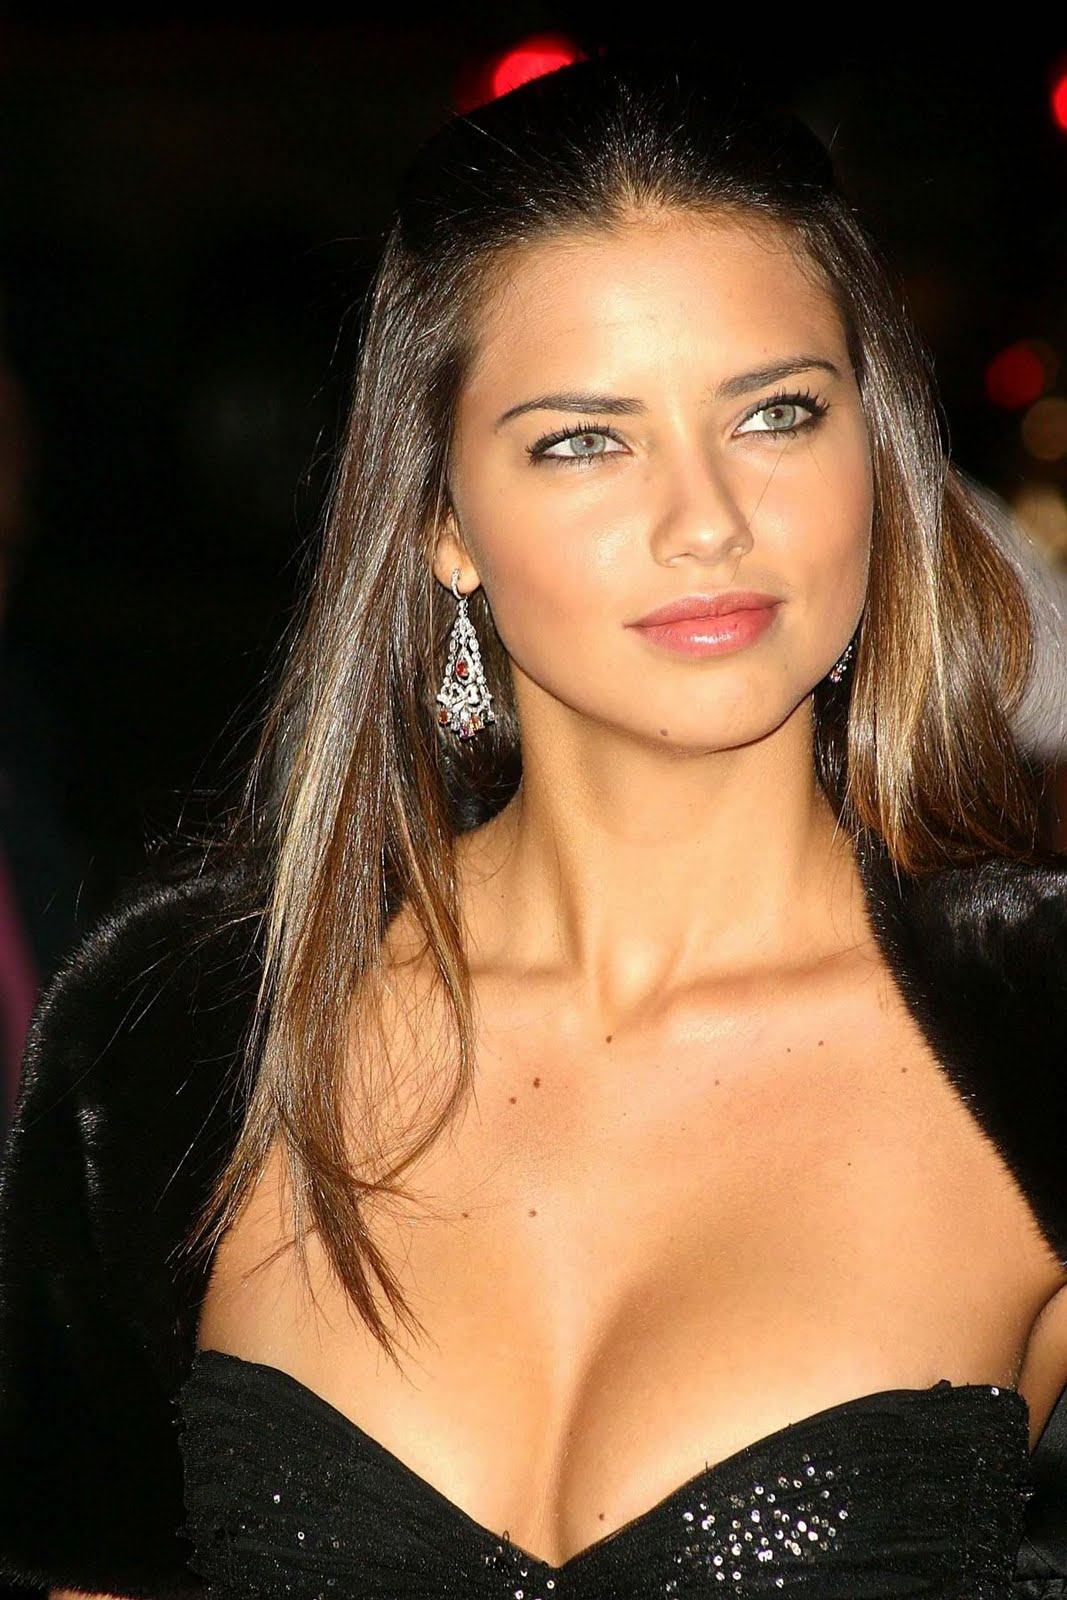 Celebrity adriana lima nudes (96 images), Is a cute